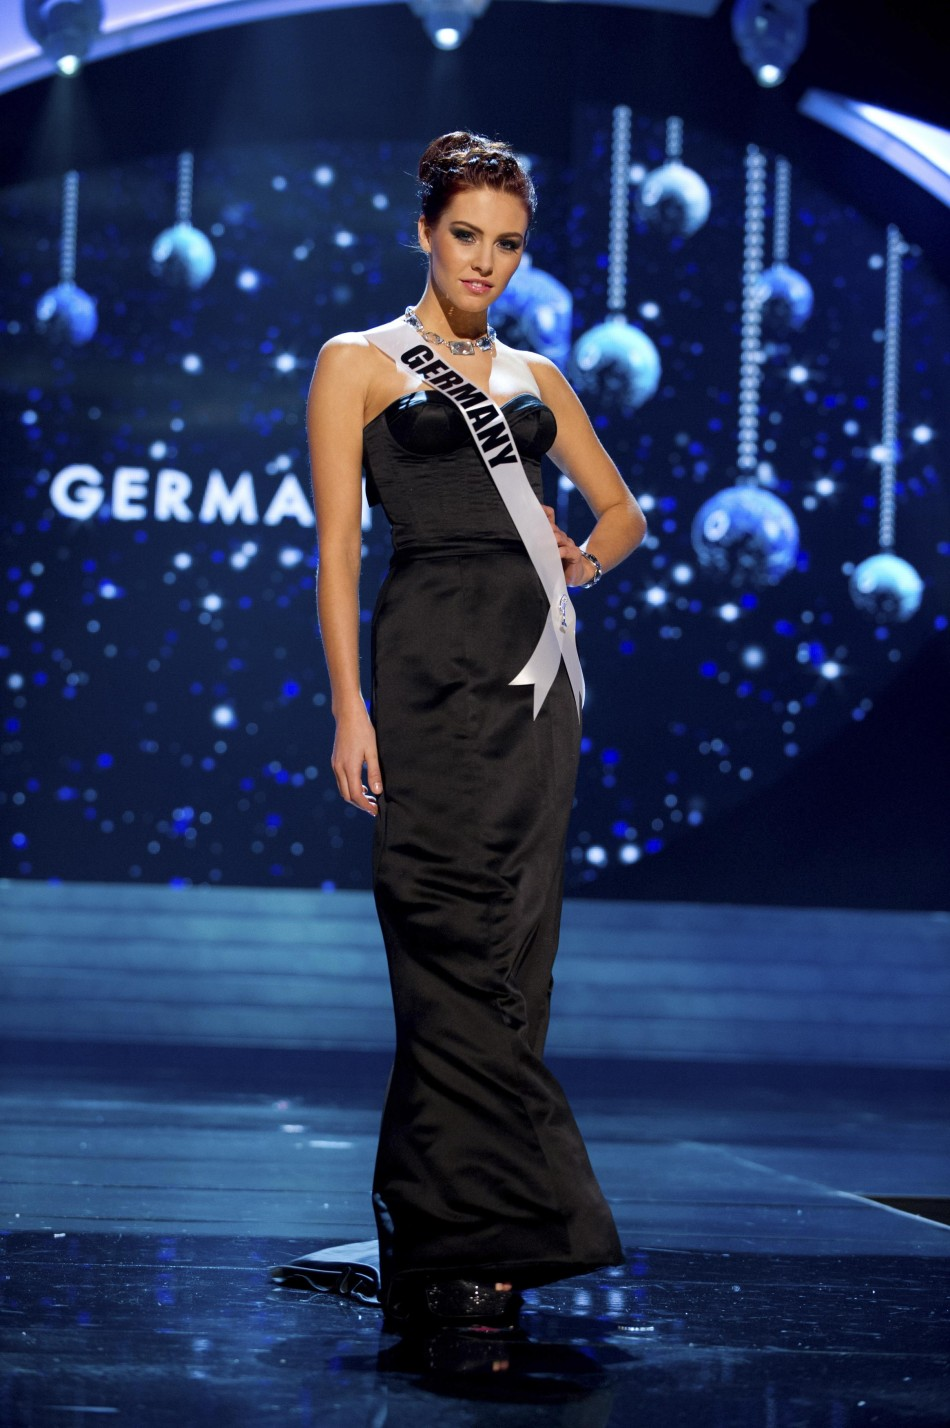 Miss Germany 2012 Endemann competes in an evening gown of her choice during the Evening Gown Competition of the 2012 Miss Universe Presentation Show in Las Vegas